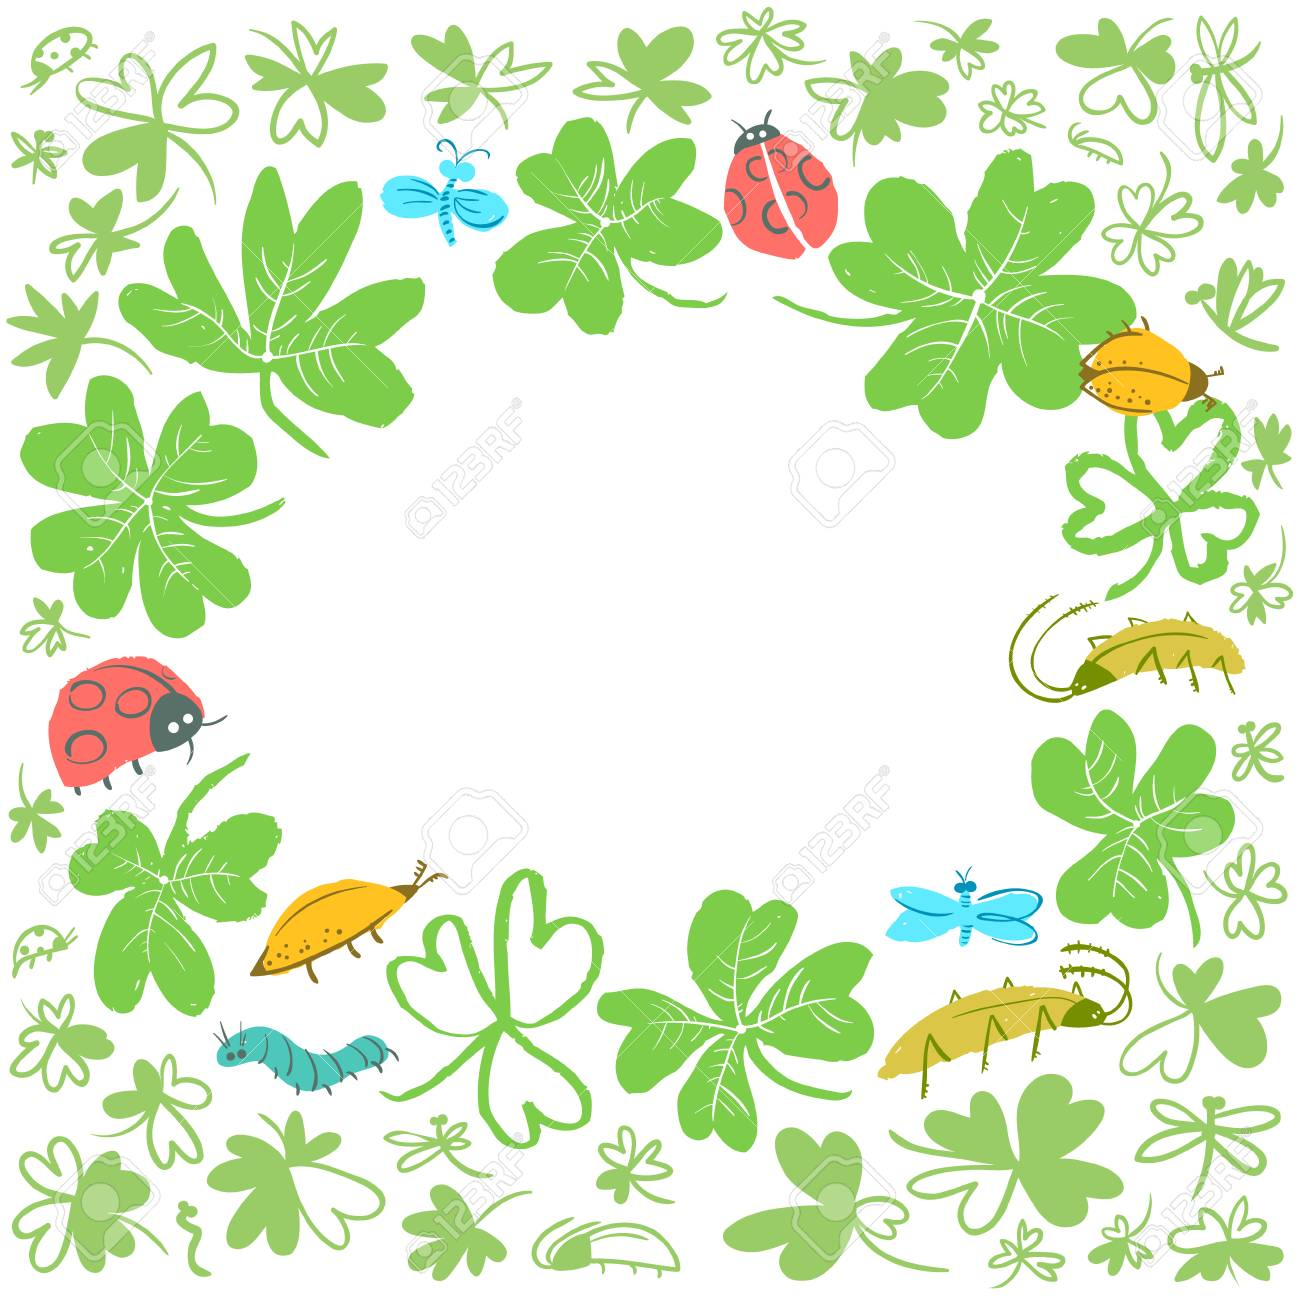 Frame With Clover Leaves And Insects Background With Cute Bugs 1300x1300